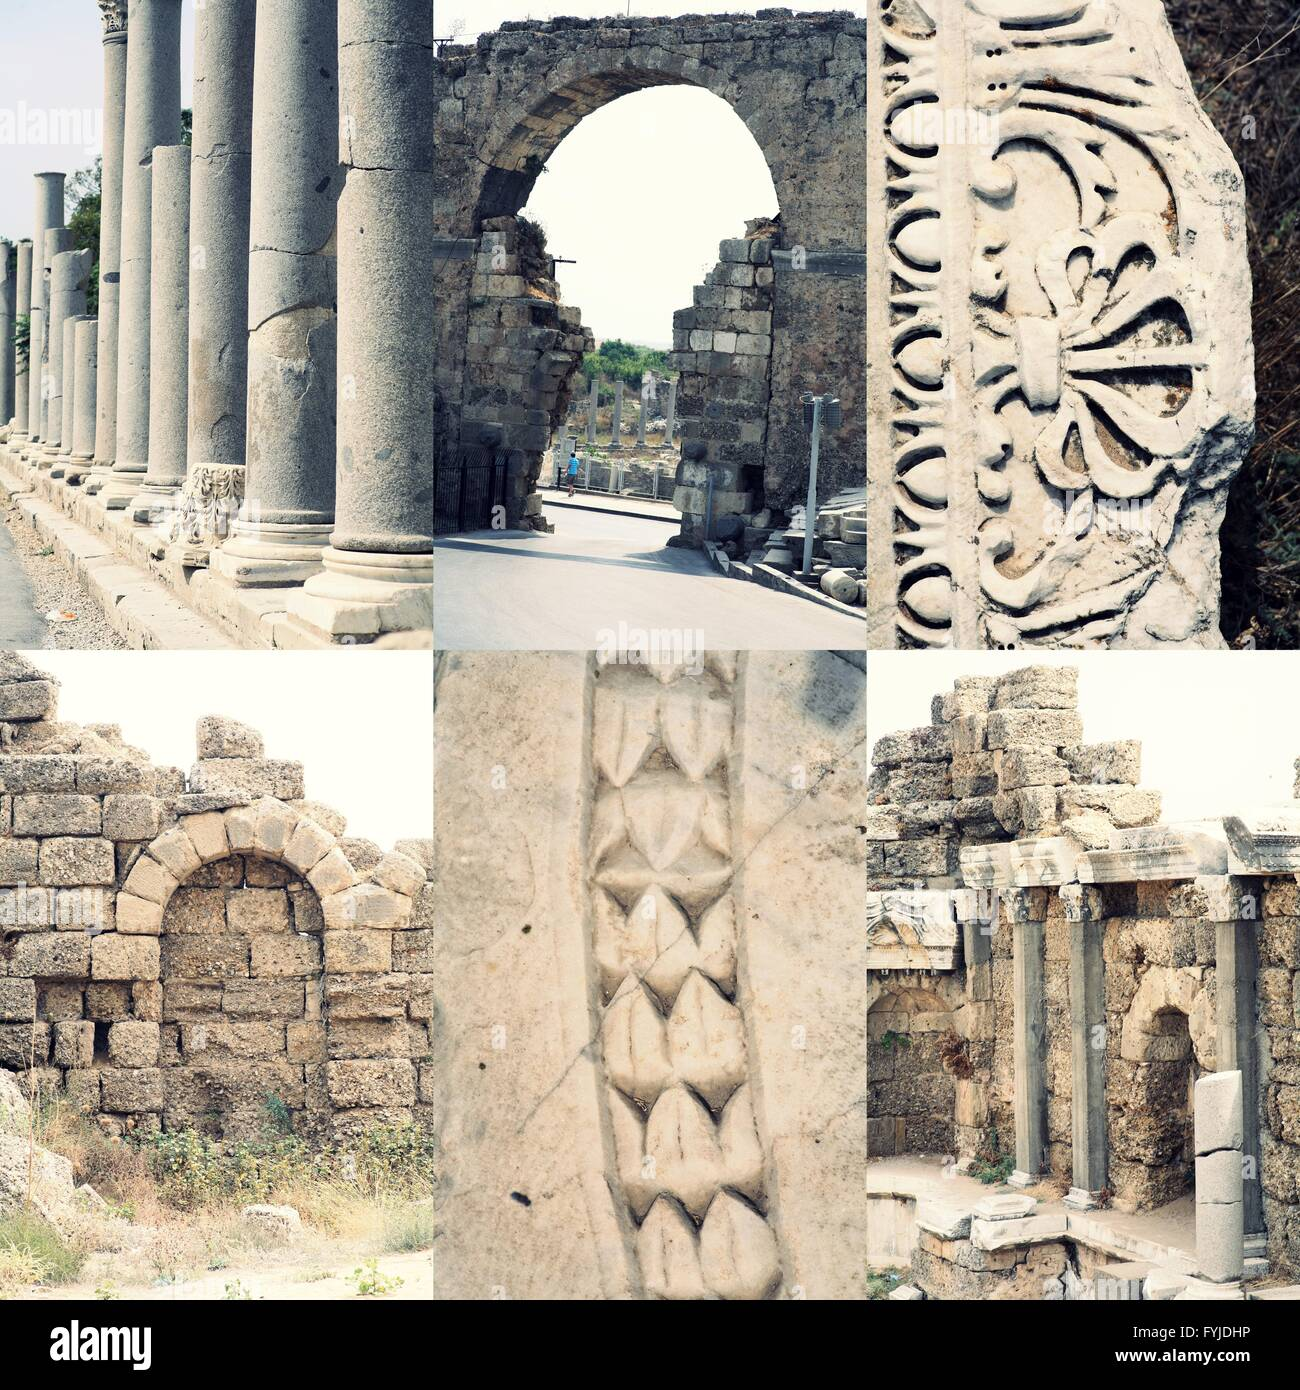 Ancient roman architecture ruined buildings with pillars and